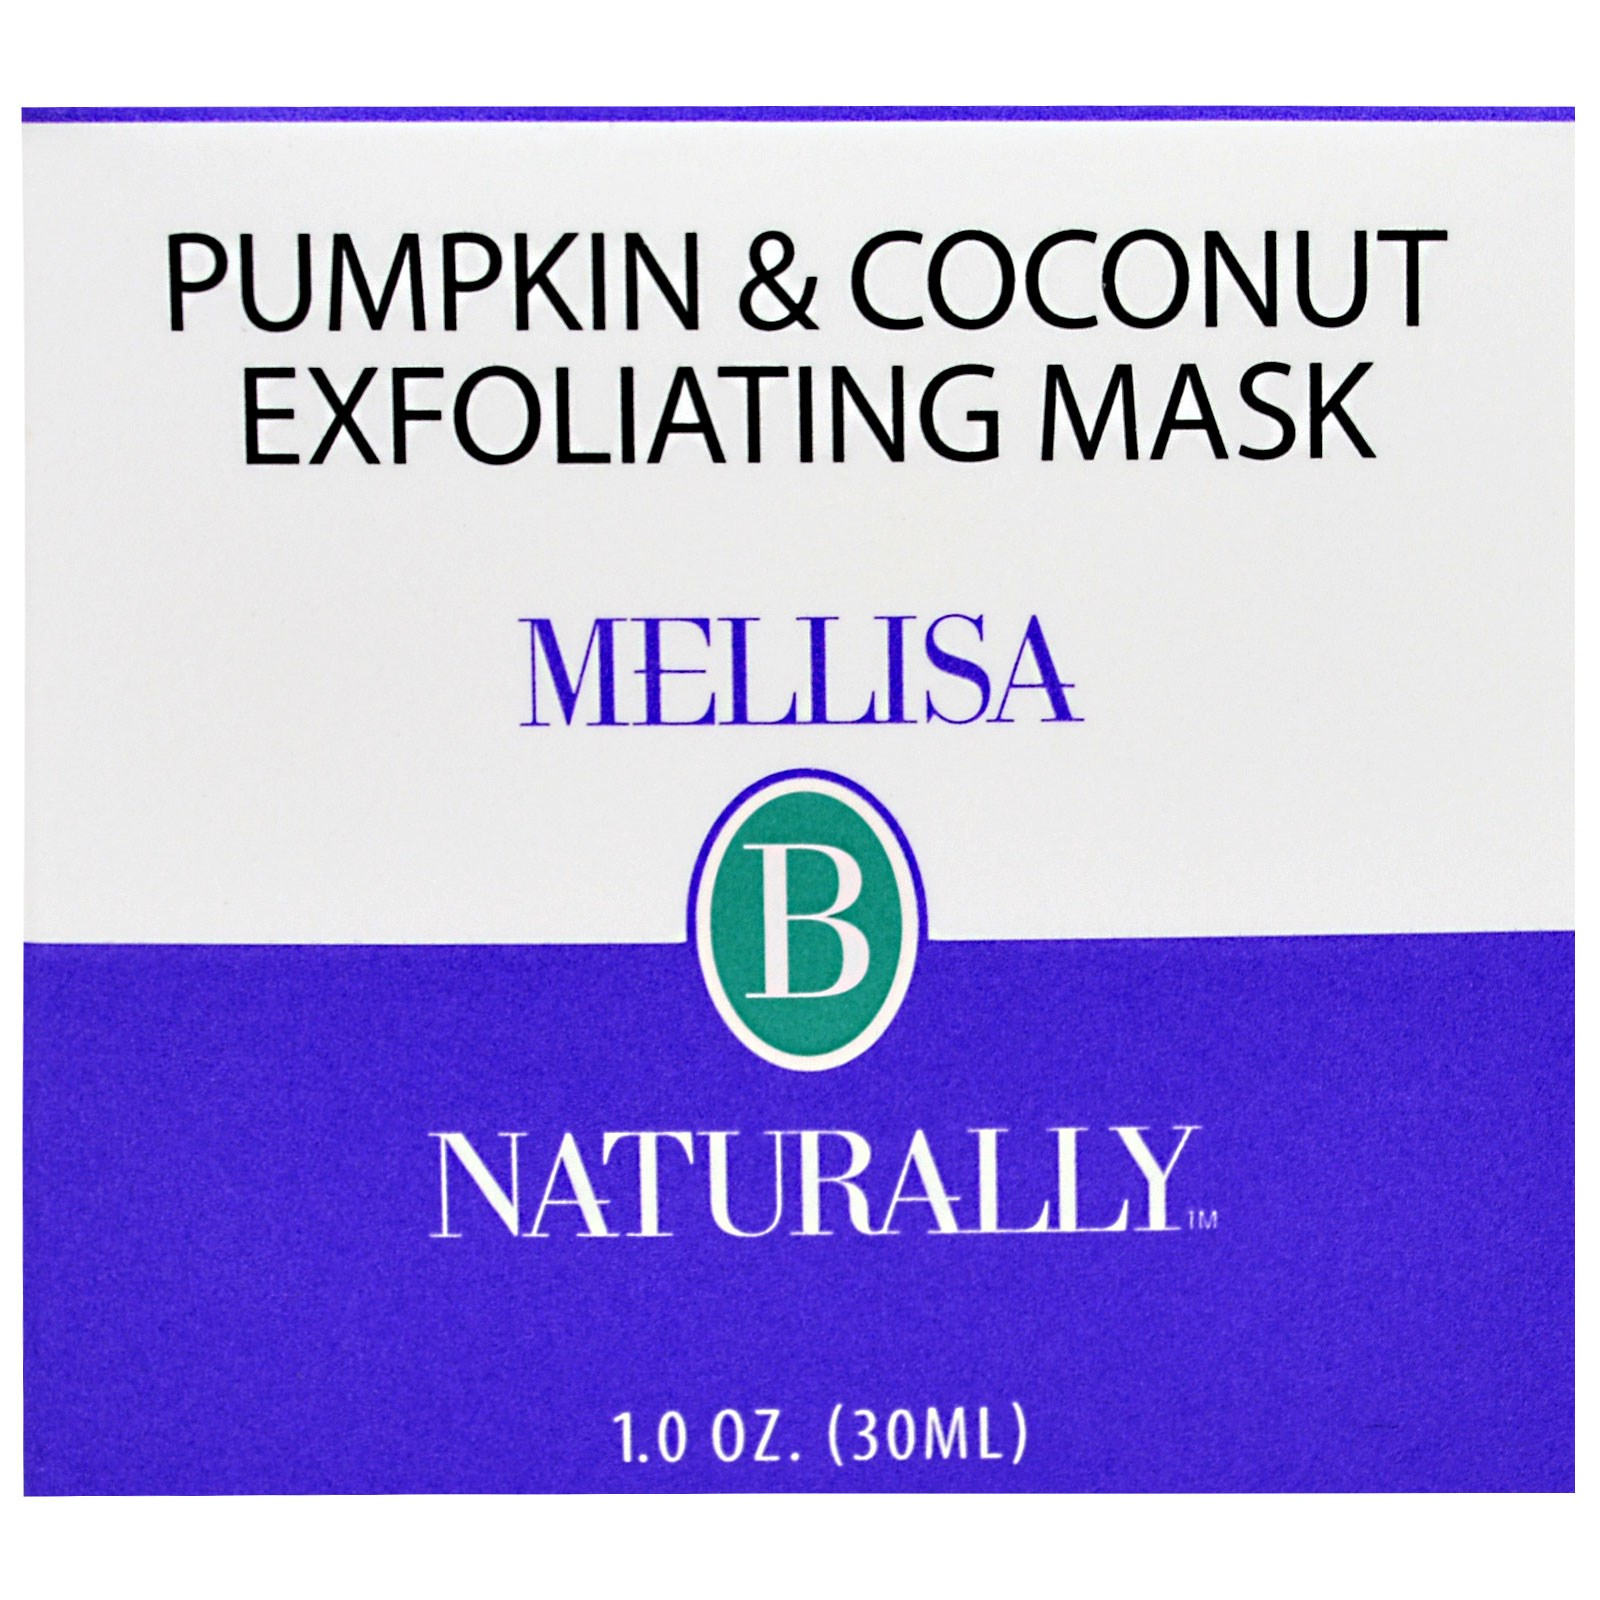 Mellisa B. Naturally, Pumpkin & Coconut Exfoliating Mask, 1 oz(pack of 4) Academie - Men Active Purifying Deep Cleansing Scrub -75ml/2.5oz